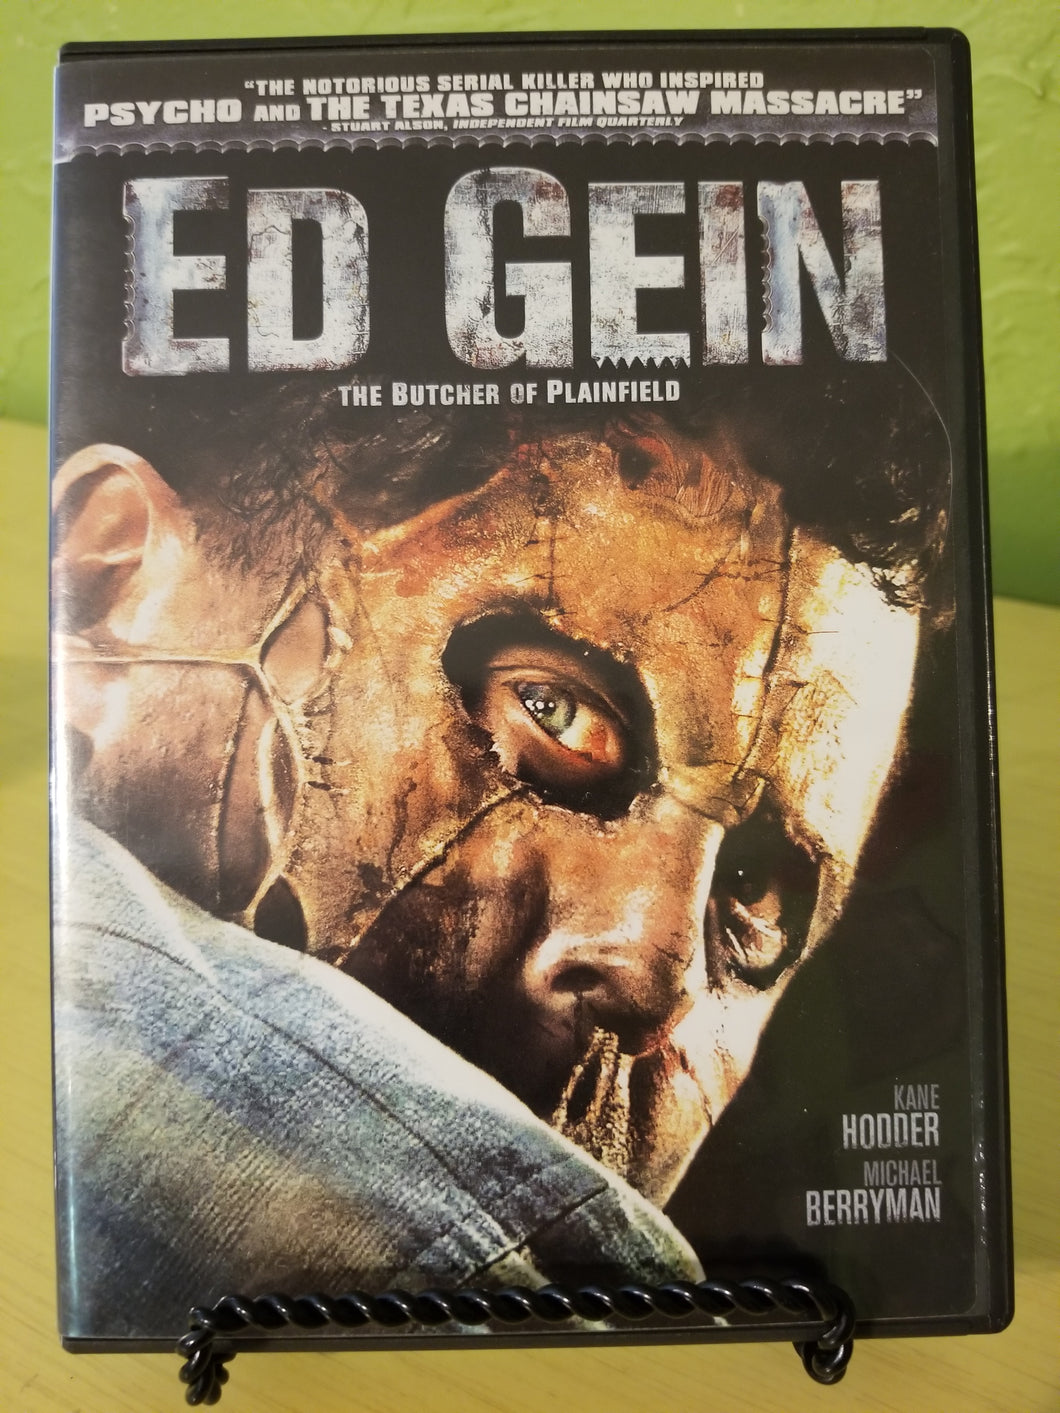 Ed Gein: The Butcher of Plainfield DVD